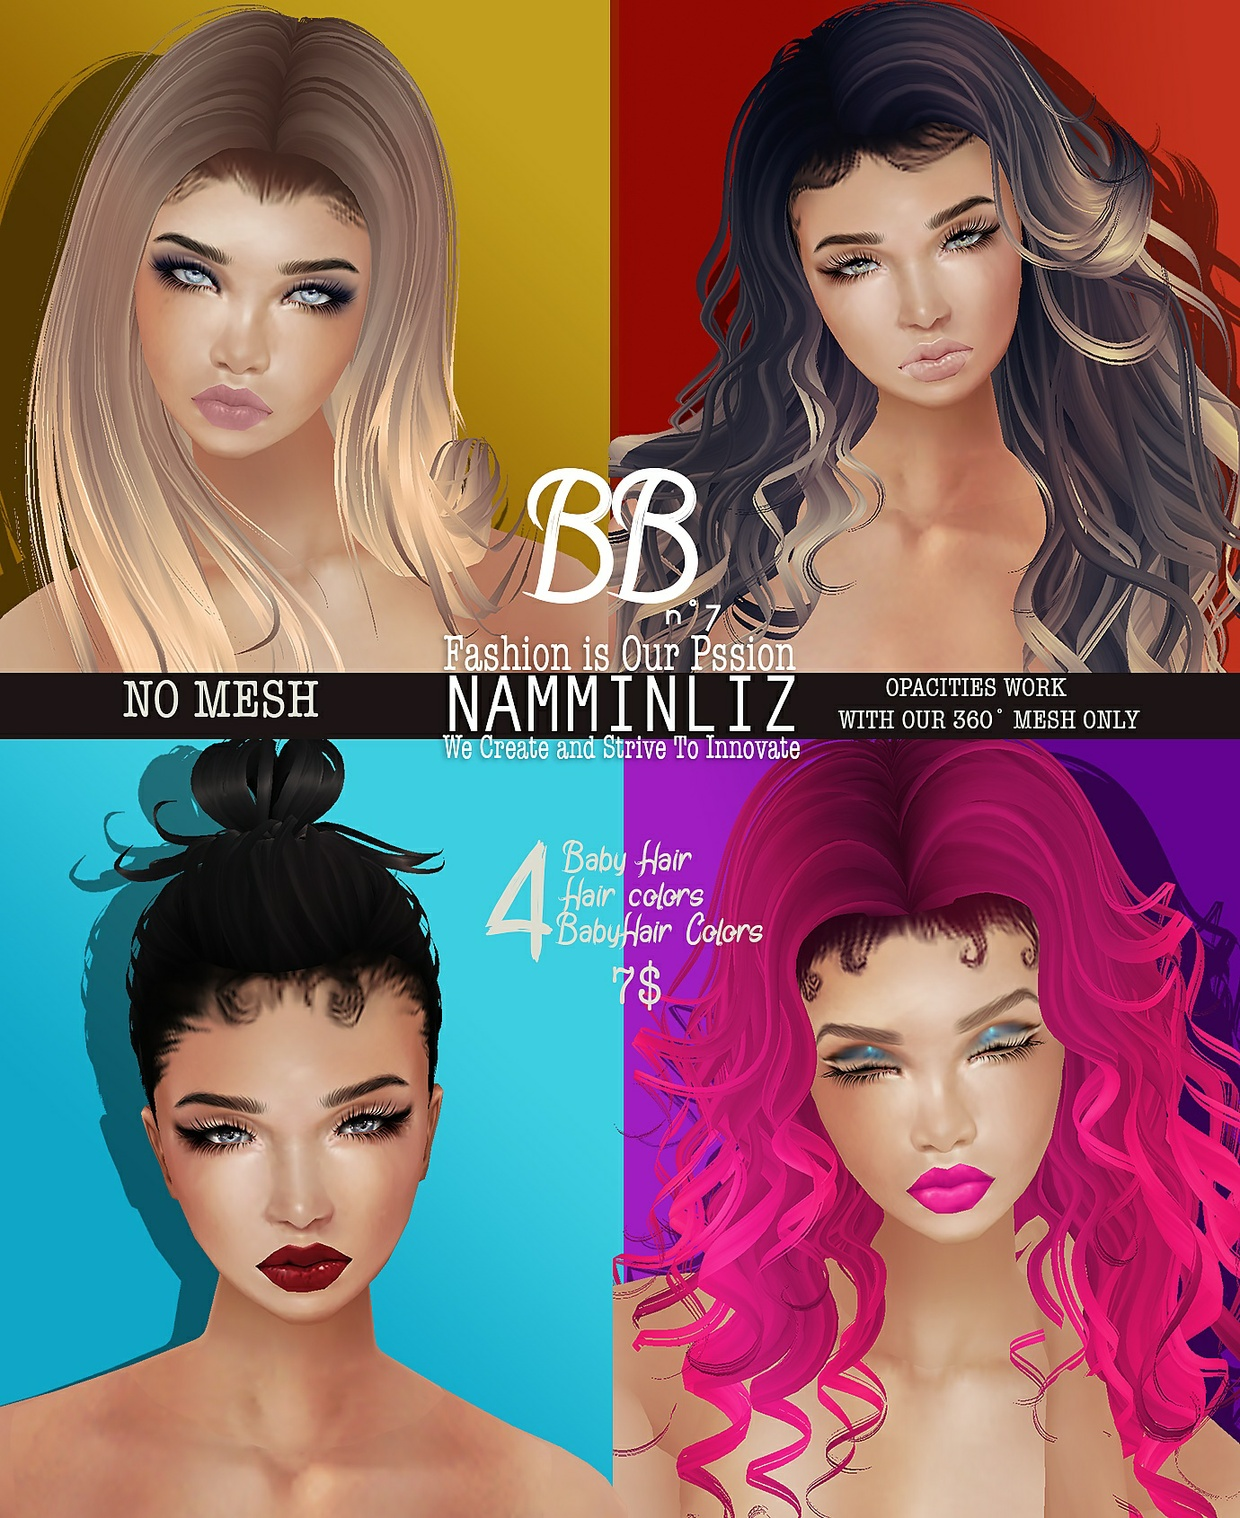 BBn˚7  4 Baby Hair style +baby Hair Colors + Hair Textures No Mesh